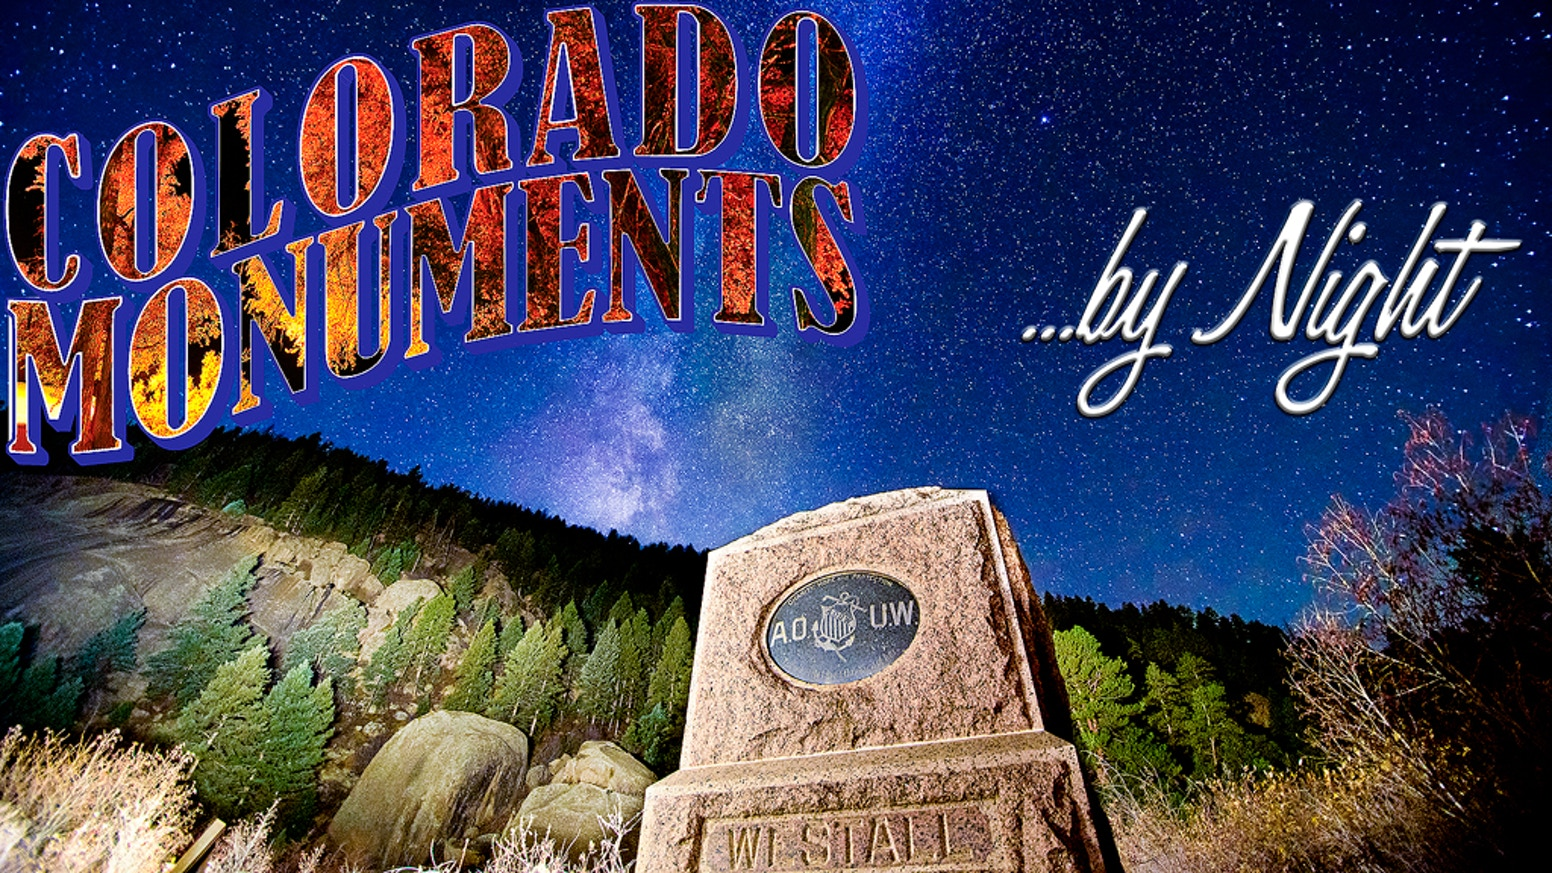 A book detailing a photographic and historical journey through Colorado's monuments, including directions and coordinates.